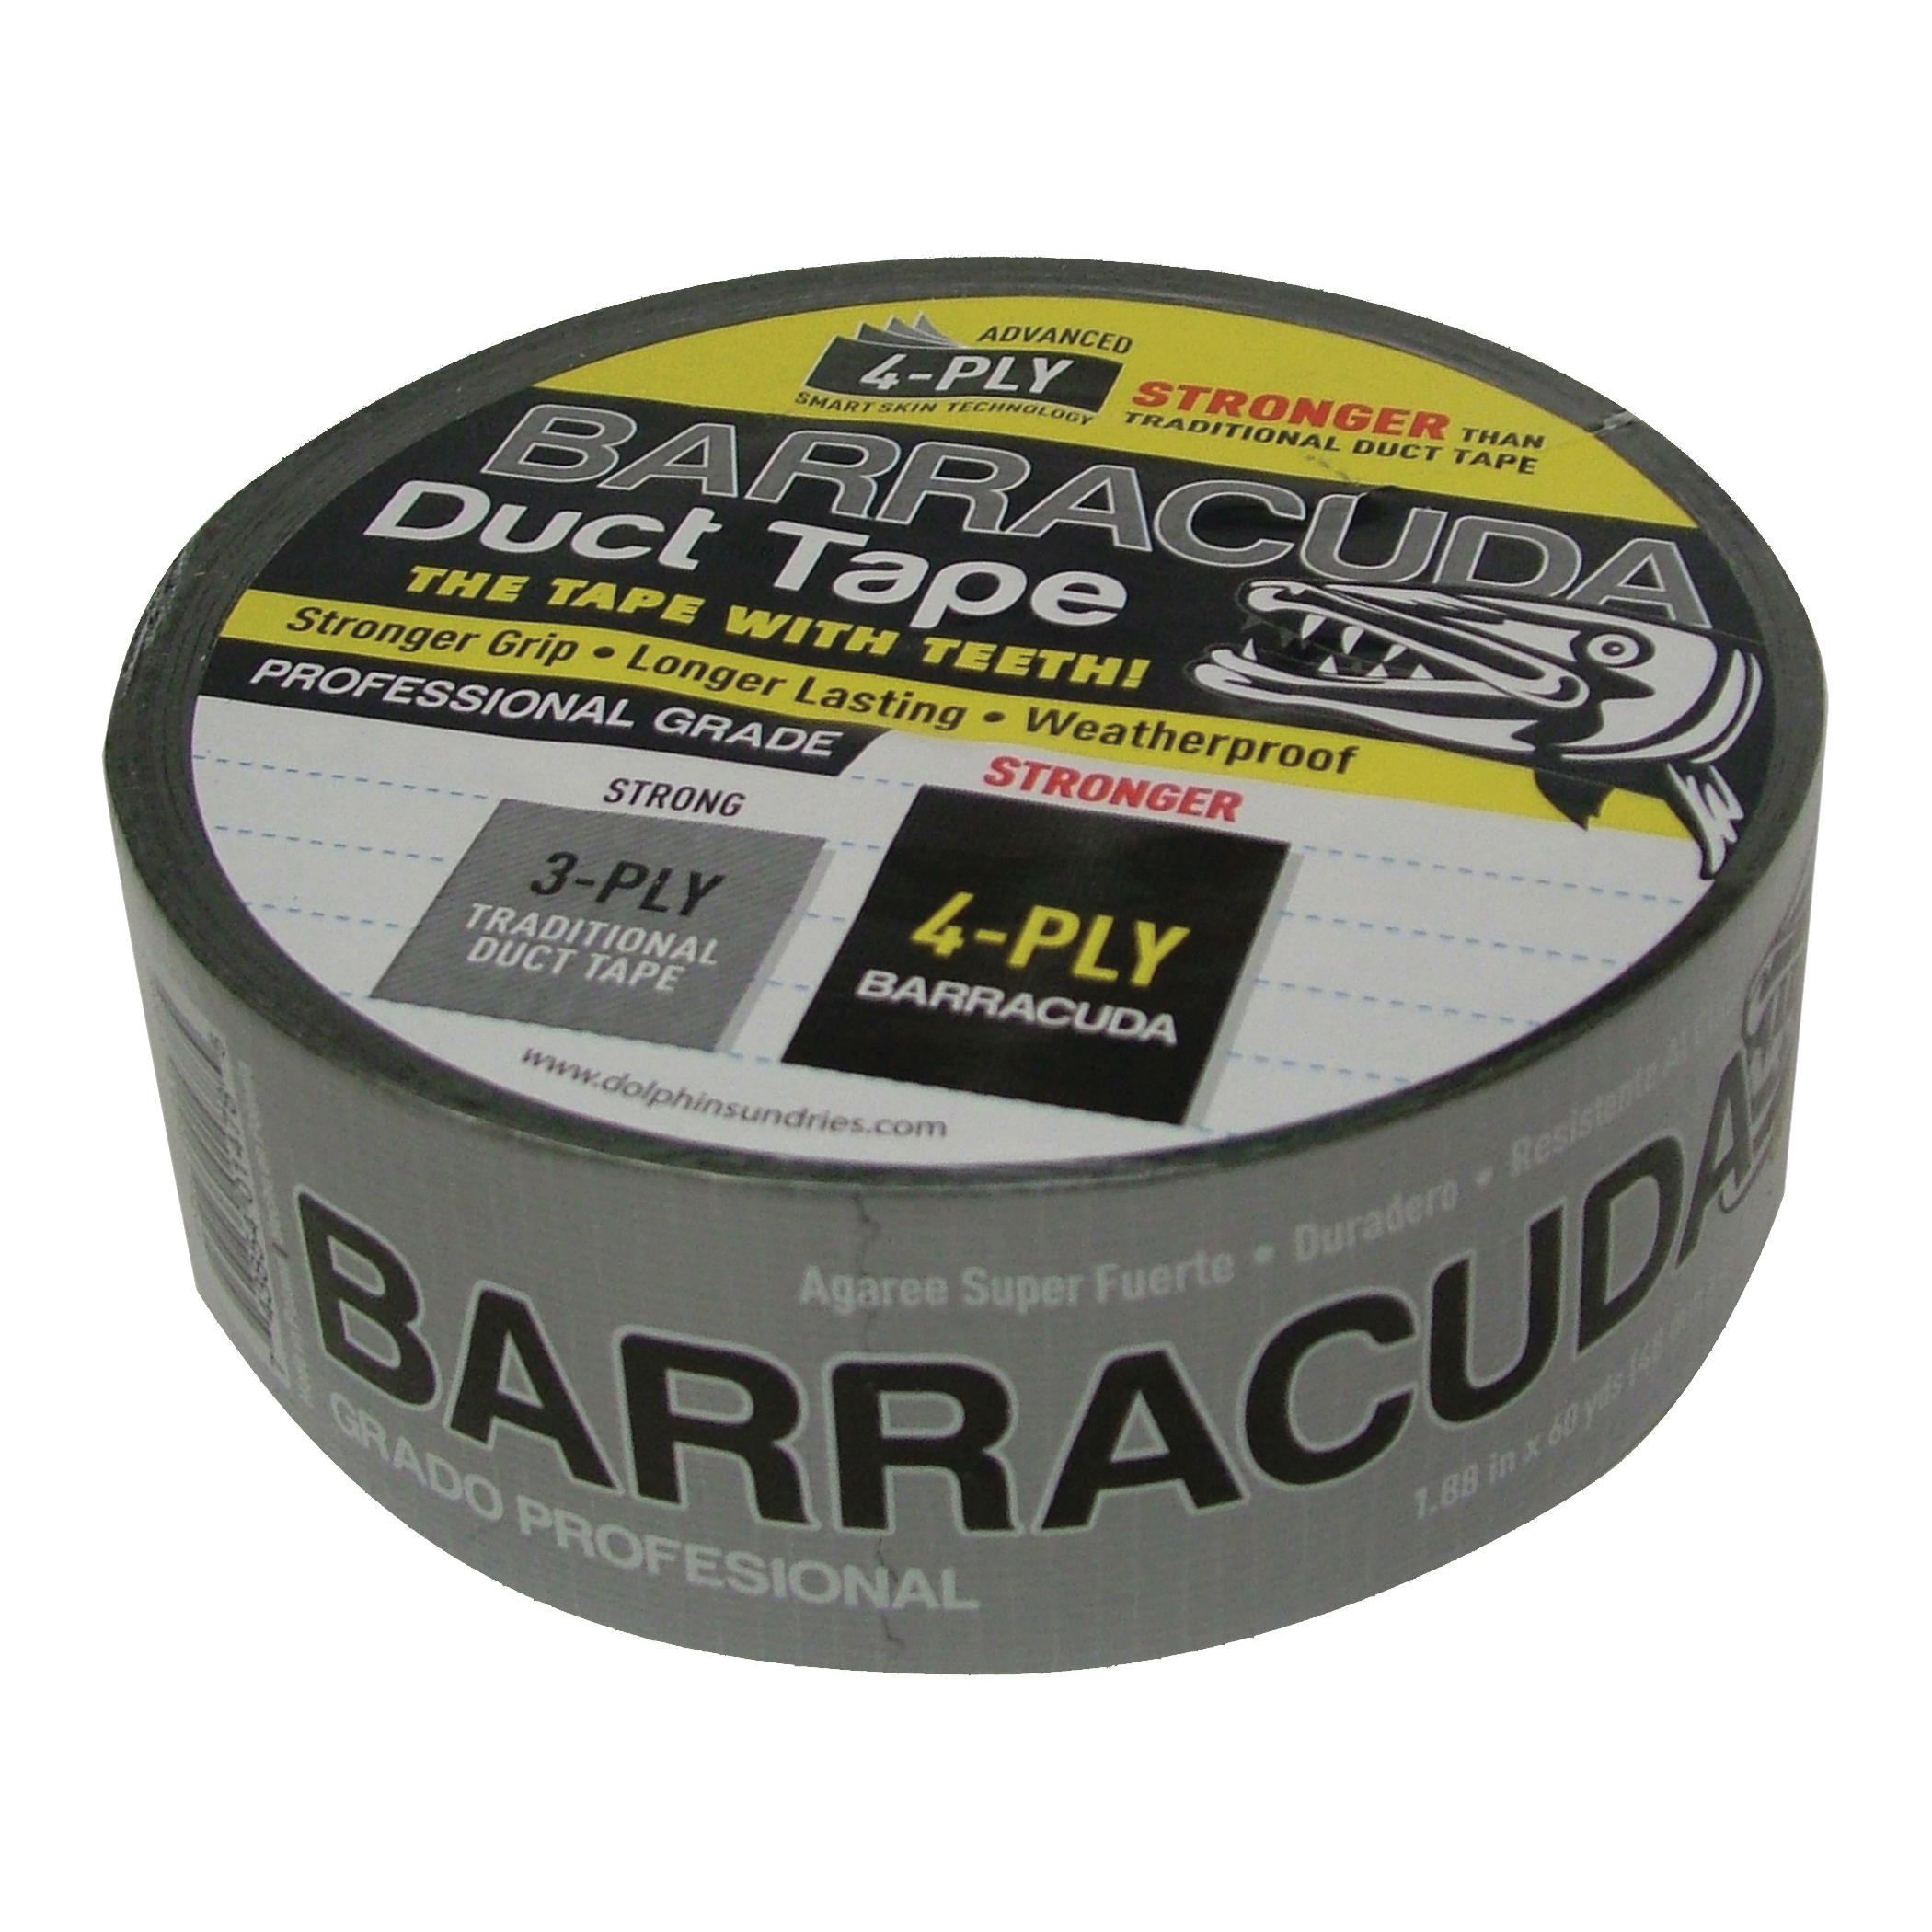 Picture of Barracuda TP DUCT BARA BLK Duct Tape, 60 yd L, 1.88 in W, Black/Silver